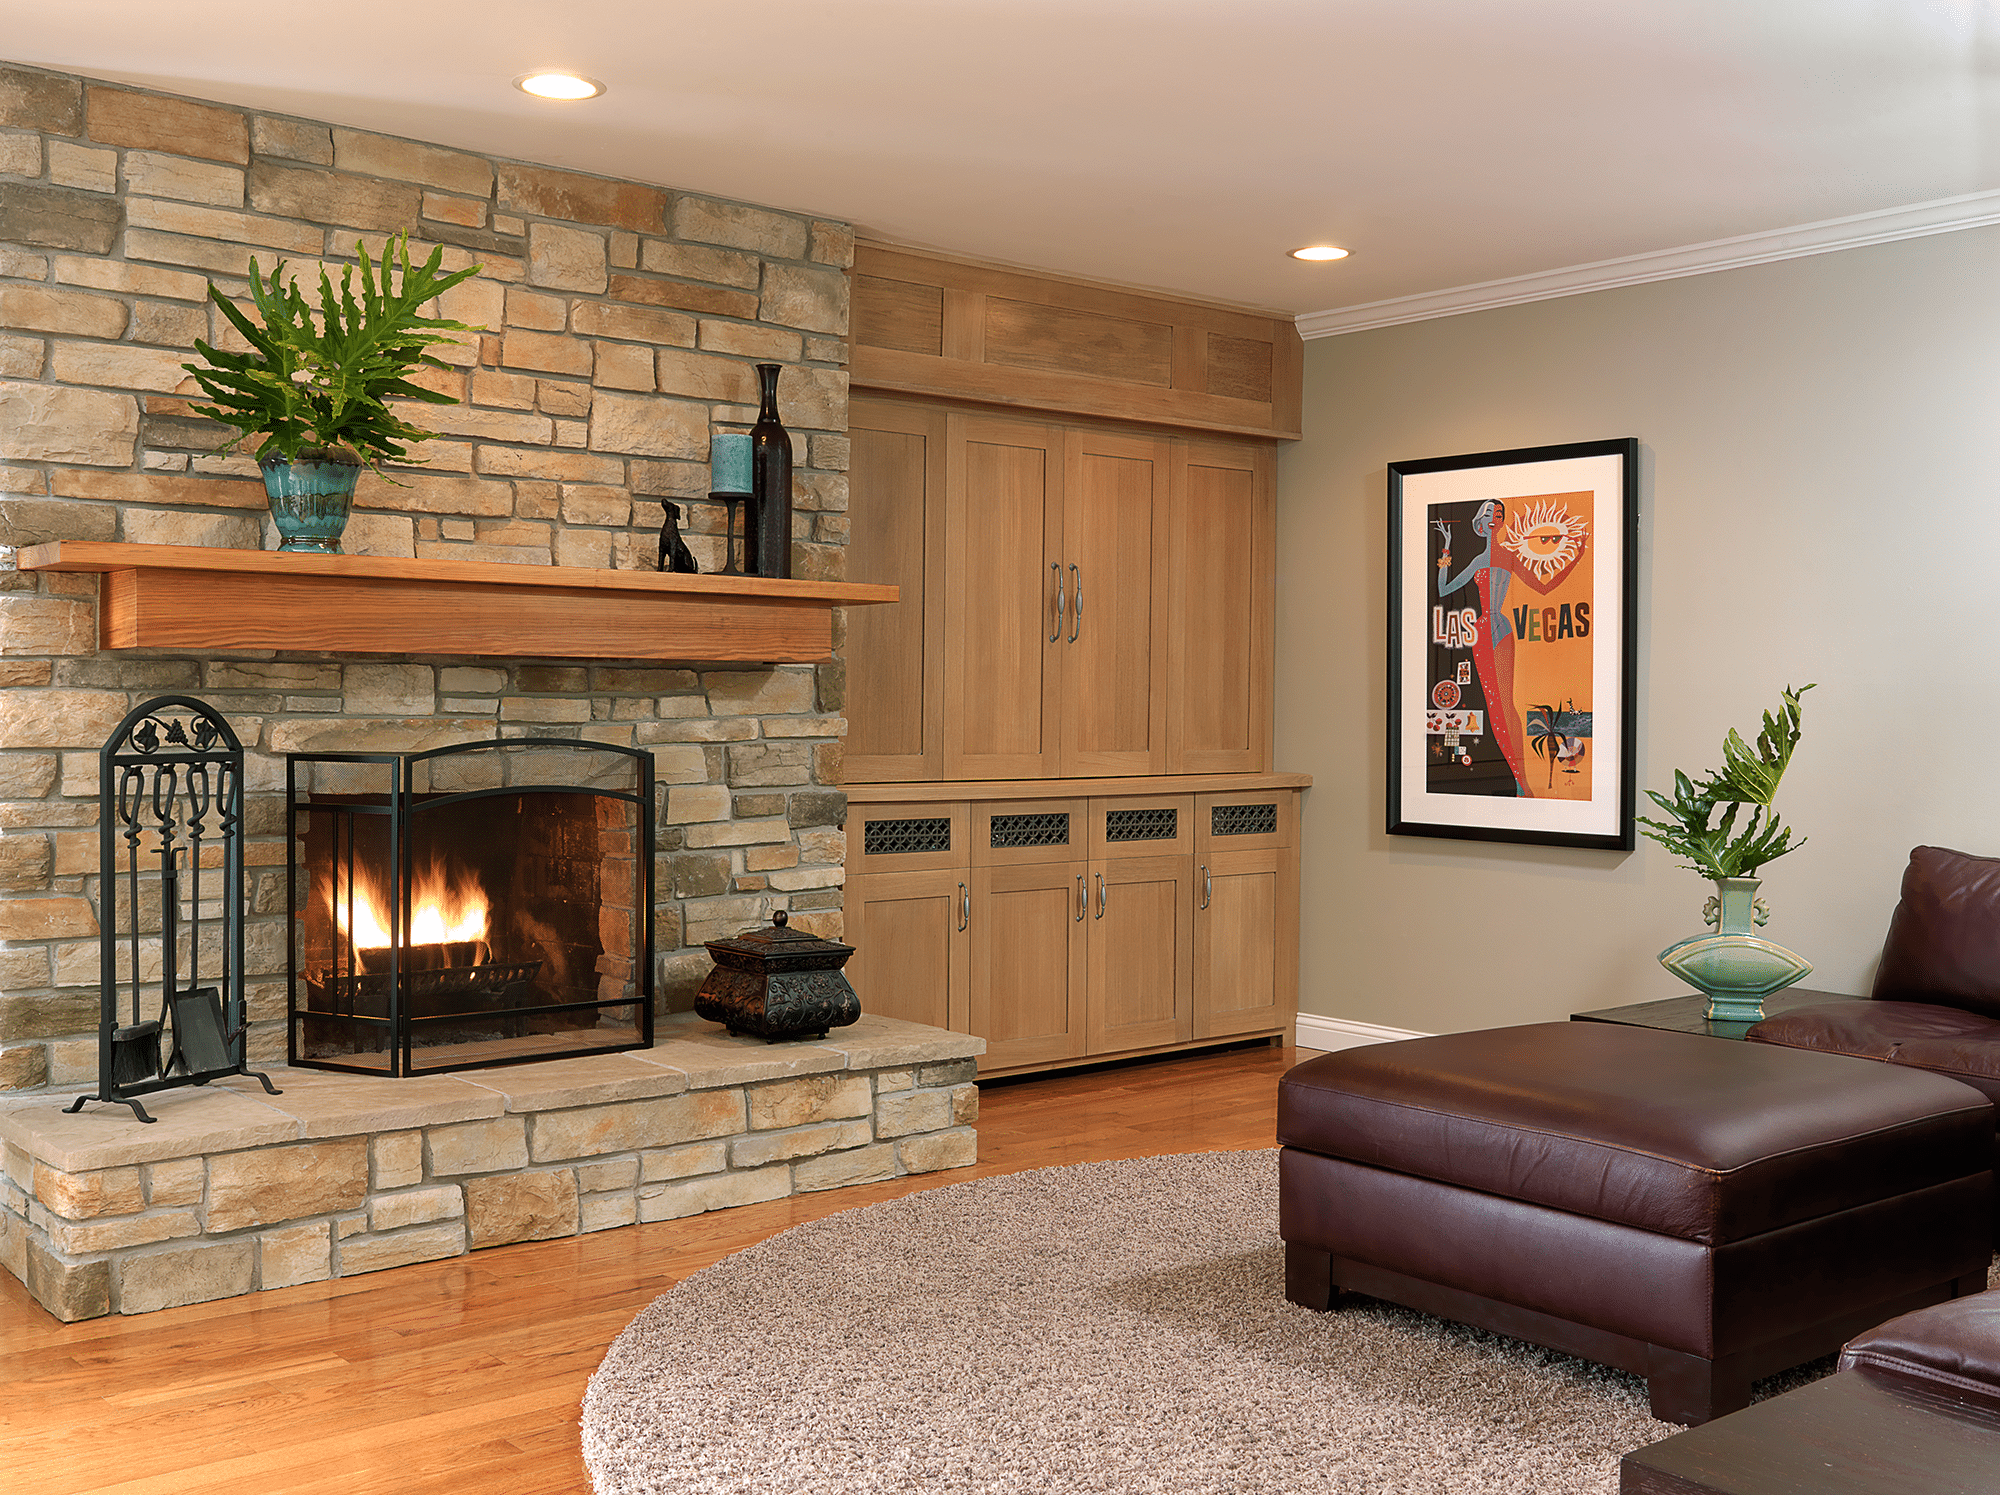 Black fireplace beside brown wooden wardrobe